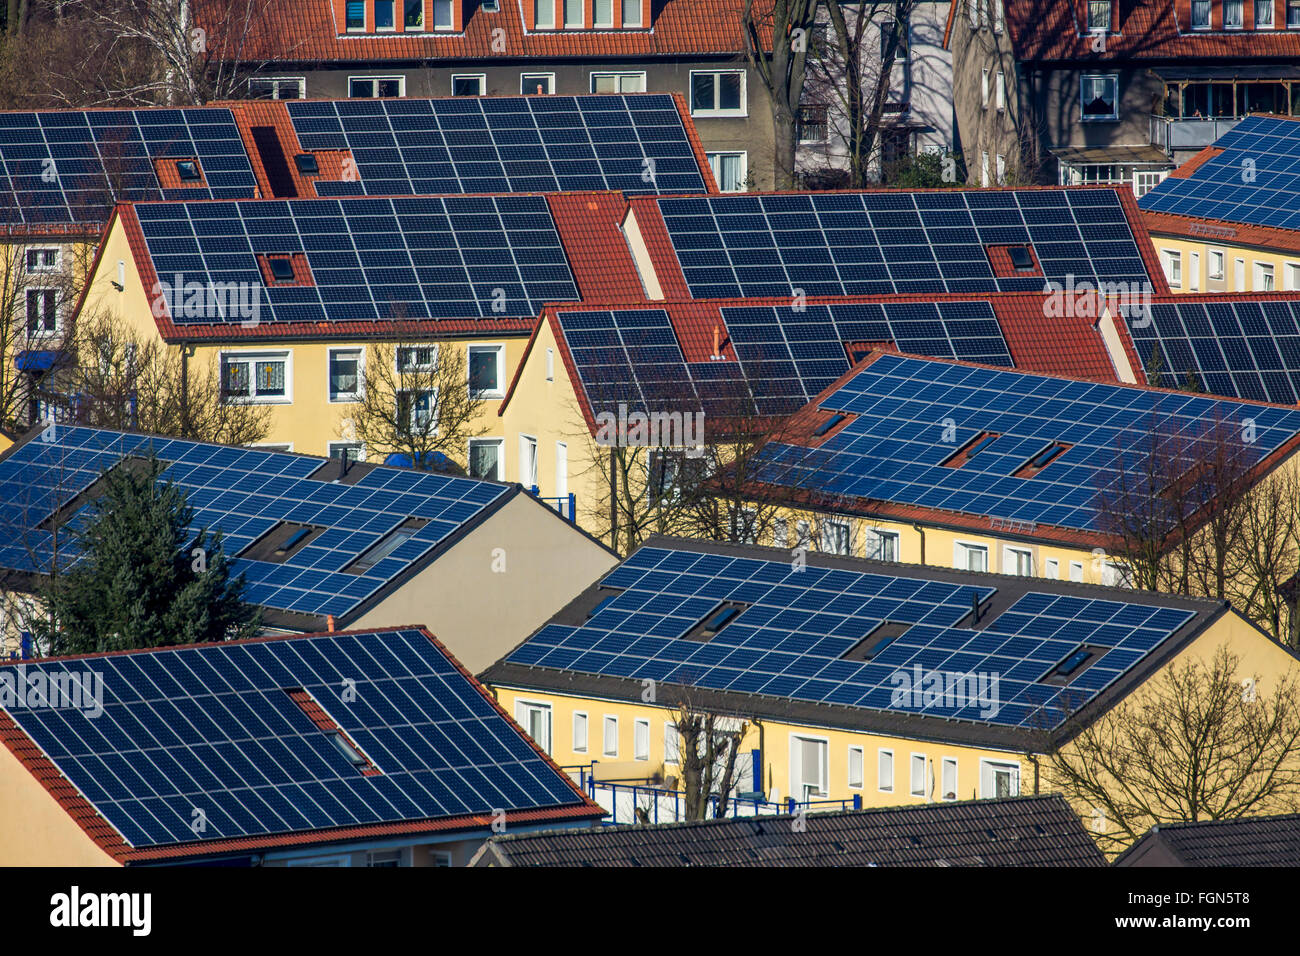 Houses with solar panels on the roof, solar energy, Bottrop, Germany - Stock Image